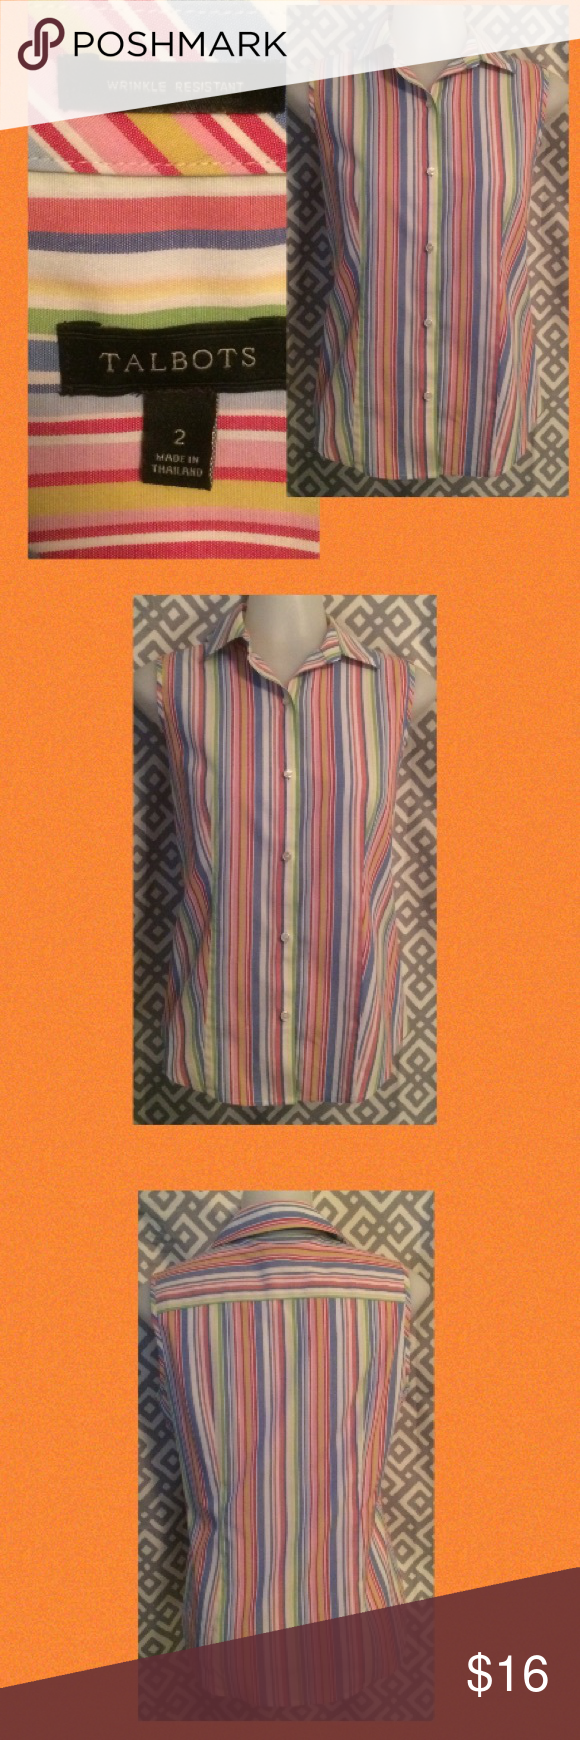 Talbots top; 2 wrinkle free button up Striped sleeveless top Talbots Tops